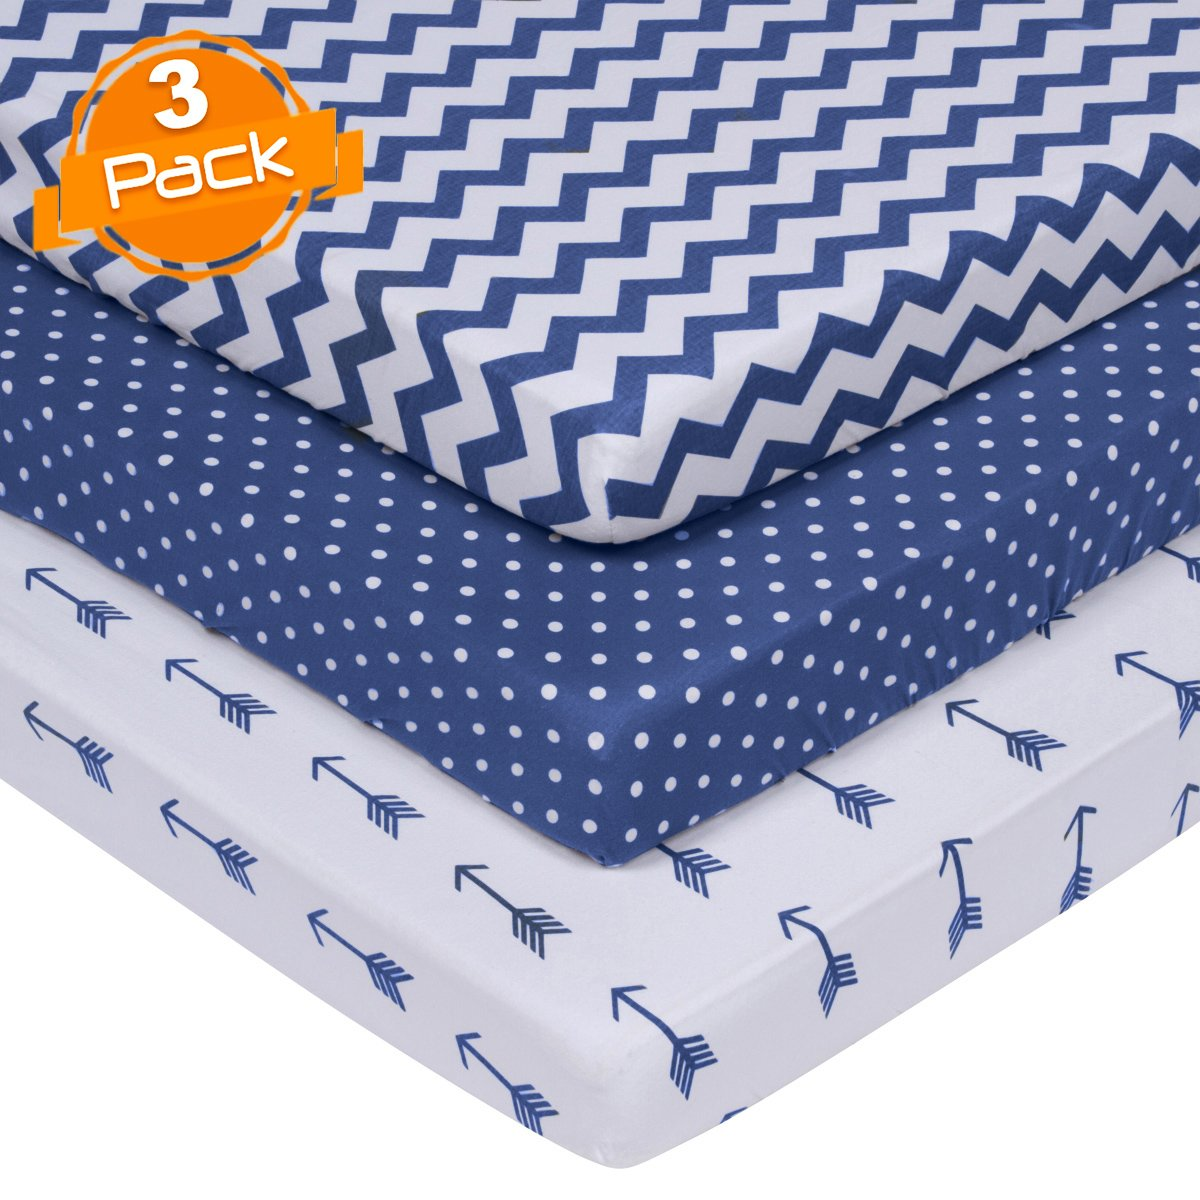 BaeBae Goods Jersey Cotton Fitted Pack n Play Playard Portable Crib Sheets Set | Navy and White | 150 GSM | 100% Cotton | 3 Pack … BaeBae & Company